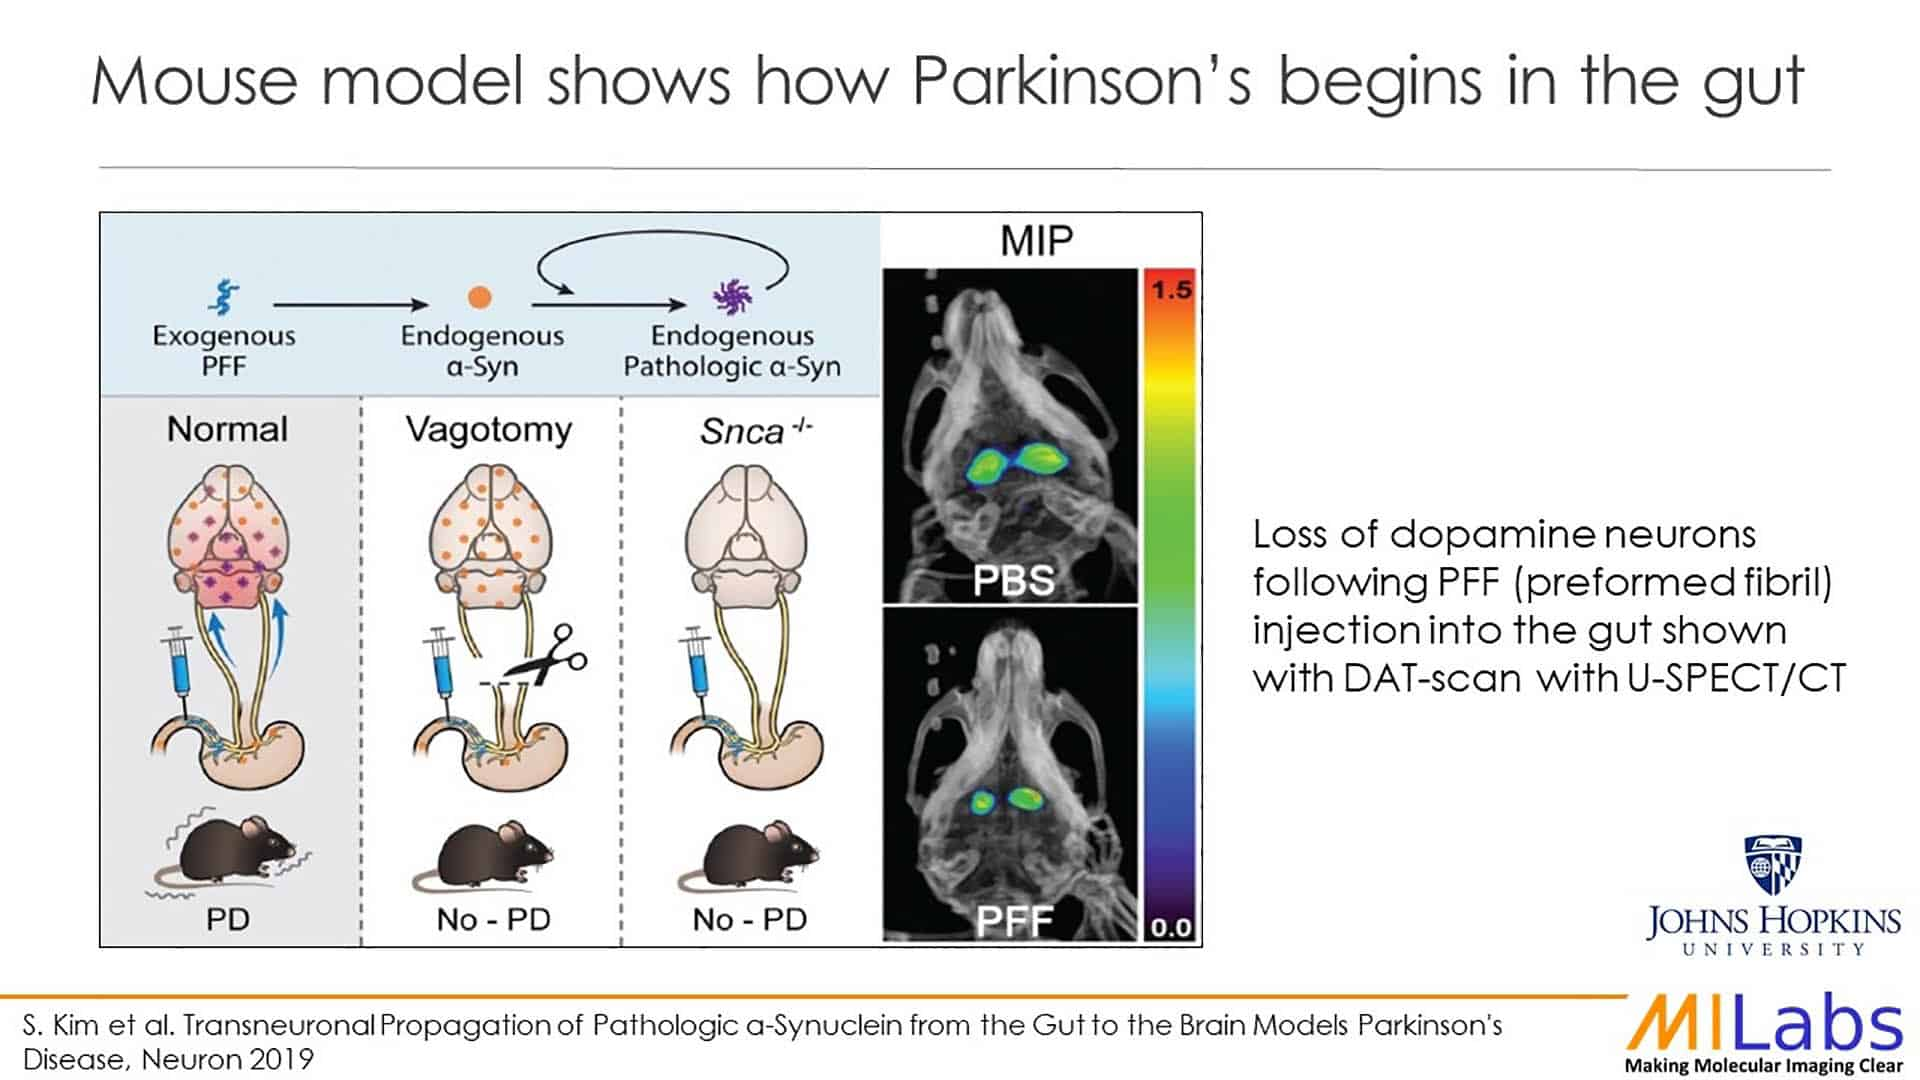 mouse model shows how Parkinson begins in the gut